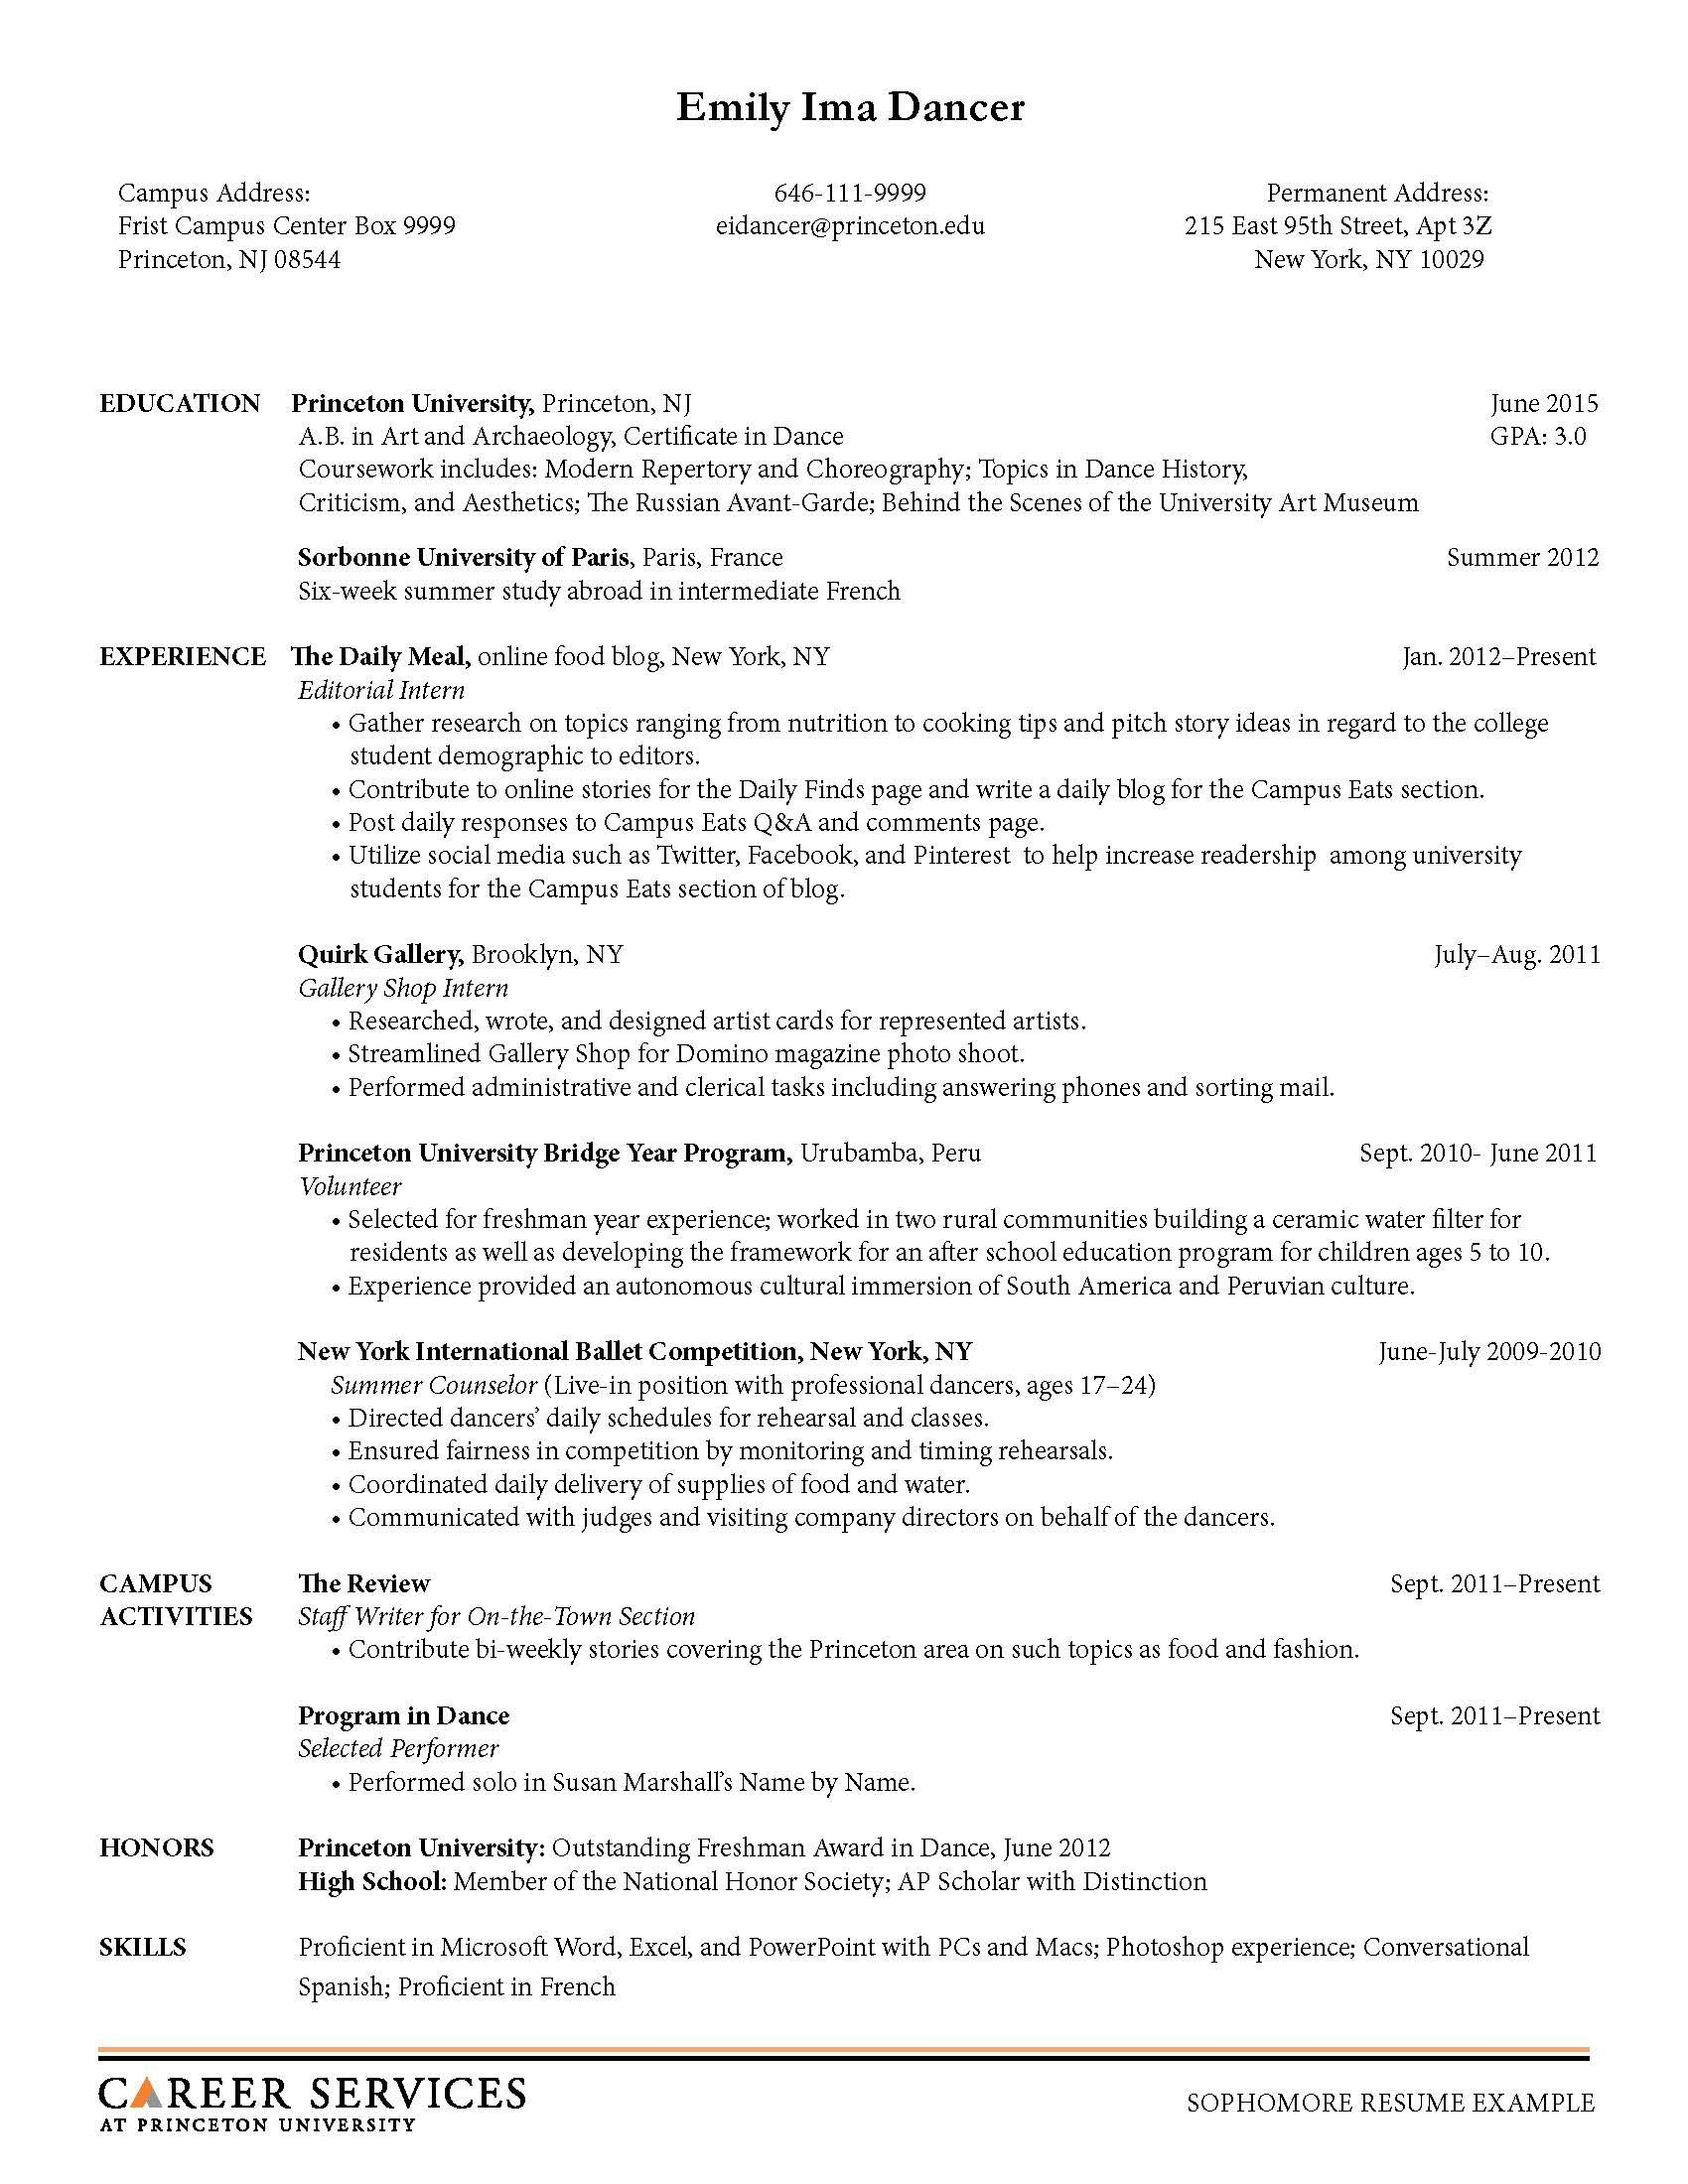 Opposenewapstandardsus  Wonderful Sample Resume Resume And Career On Pinterest With Magnificent Work Experience Resume Examples Besides Example Of A Simple Resume Furthermore Sample Sales Resumes With Astounding Resume Download Template Also Caregiver Resume Samples In Addition Executive Assistant Resume Examples And Legal Resume Examples As Well As How To Write A Basic Resume Additionally Executive Assistant Resume Skills From Pinterestcom With Opposenewapstandardsus  Magnificent Sample Resume Resume And Career On Pinterest With Astounding Work Experience Resume Examples Besides Example Of A Simple Resume Furthermore Sample Sales Resumes And Wonderful Resume Download Template Also Caregiver Resume Samples In Addition Executive Assistant Resume Examples From Pinterestcom